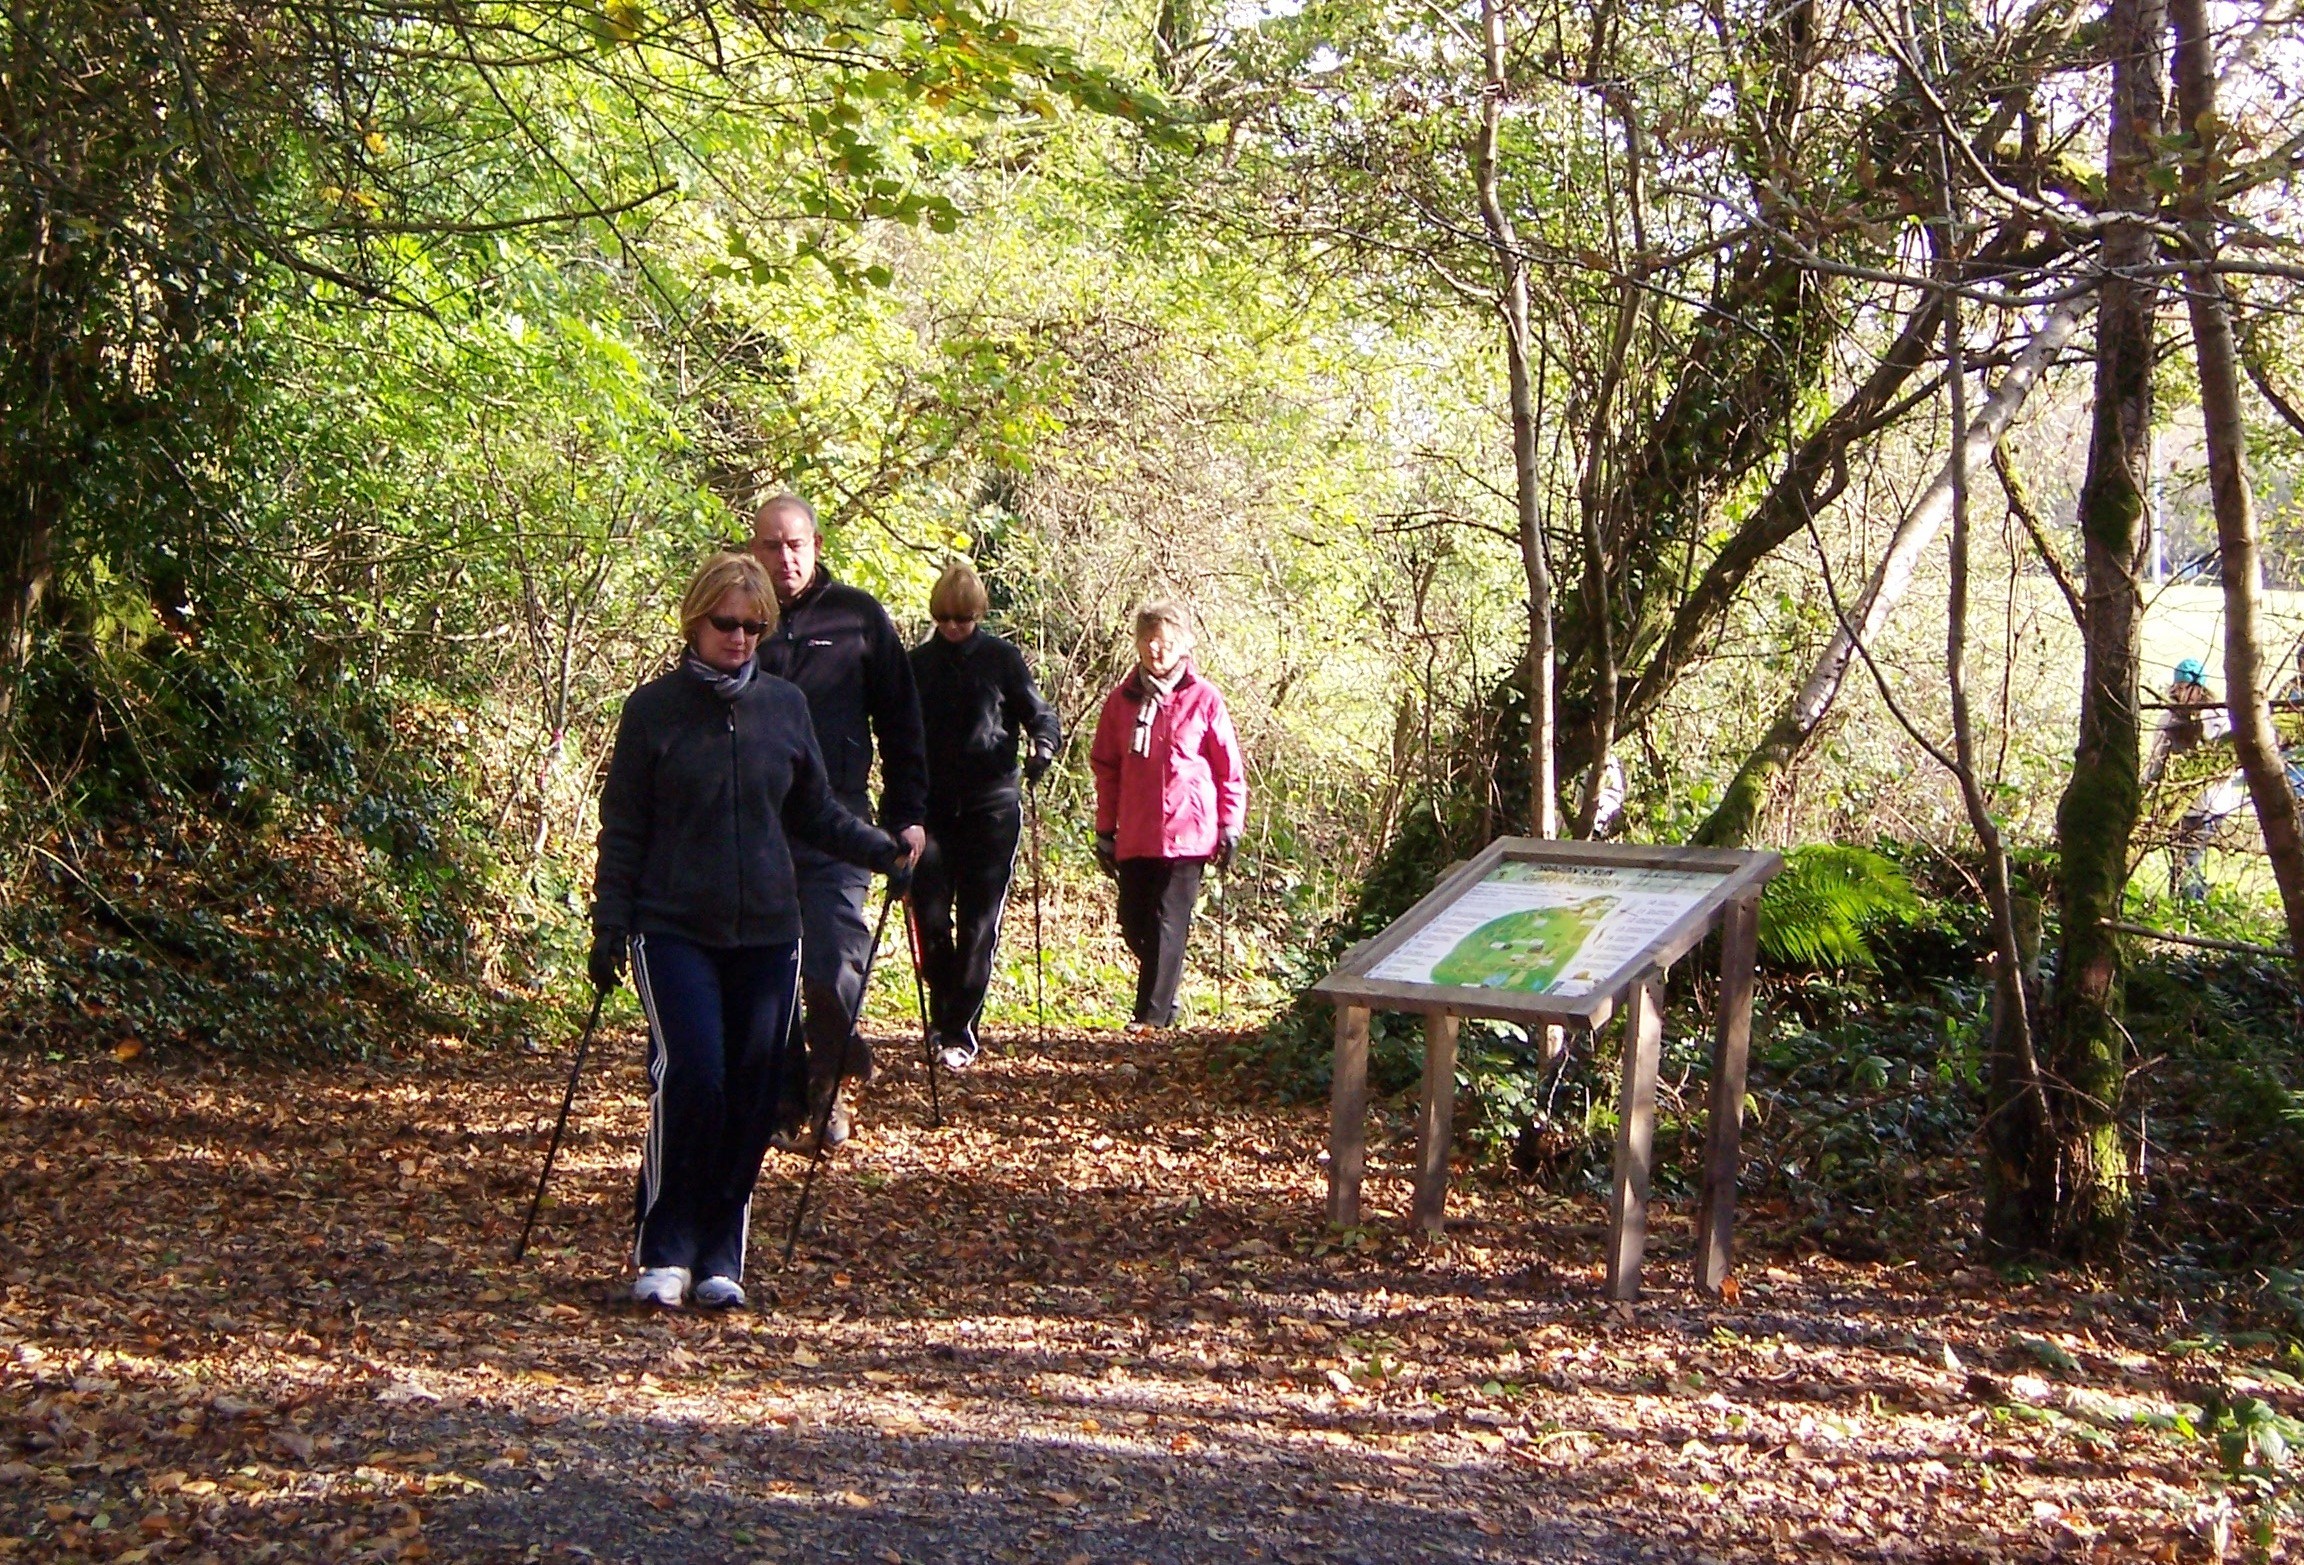 nordic walking featured image